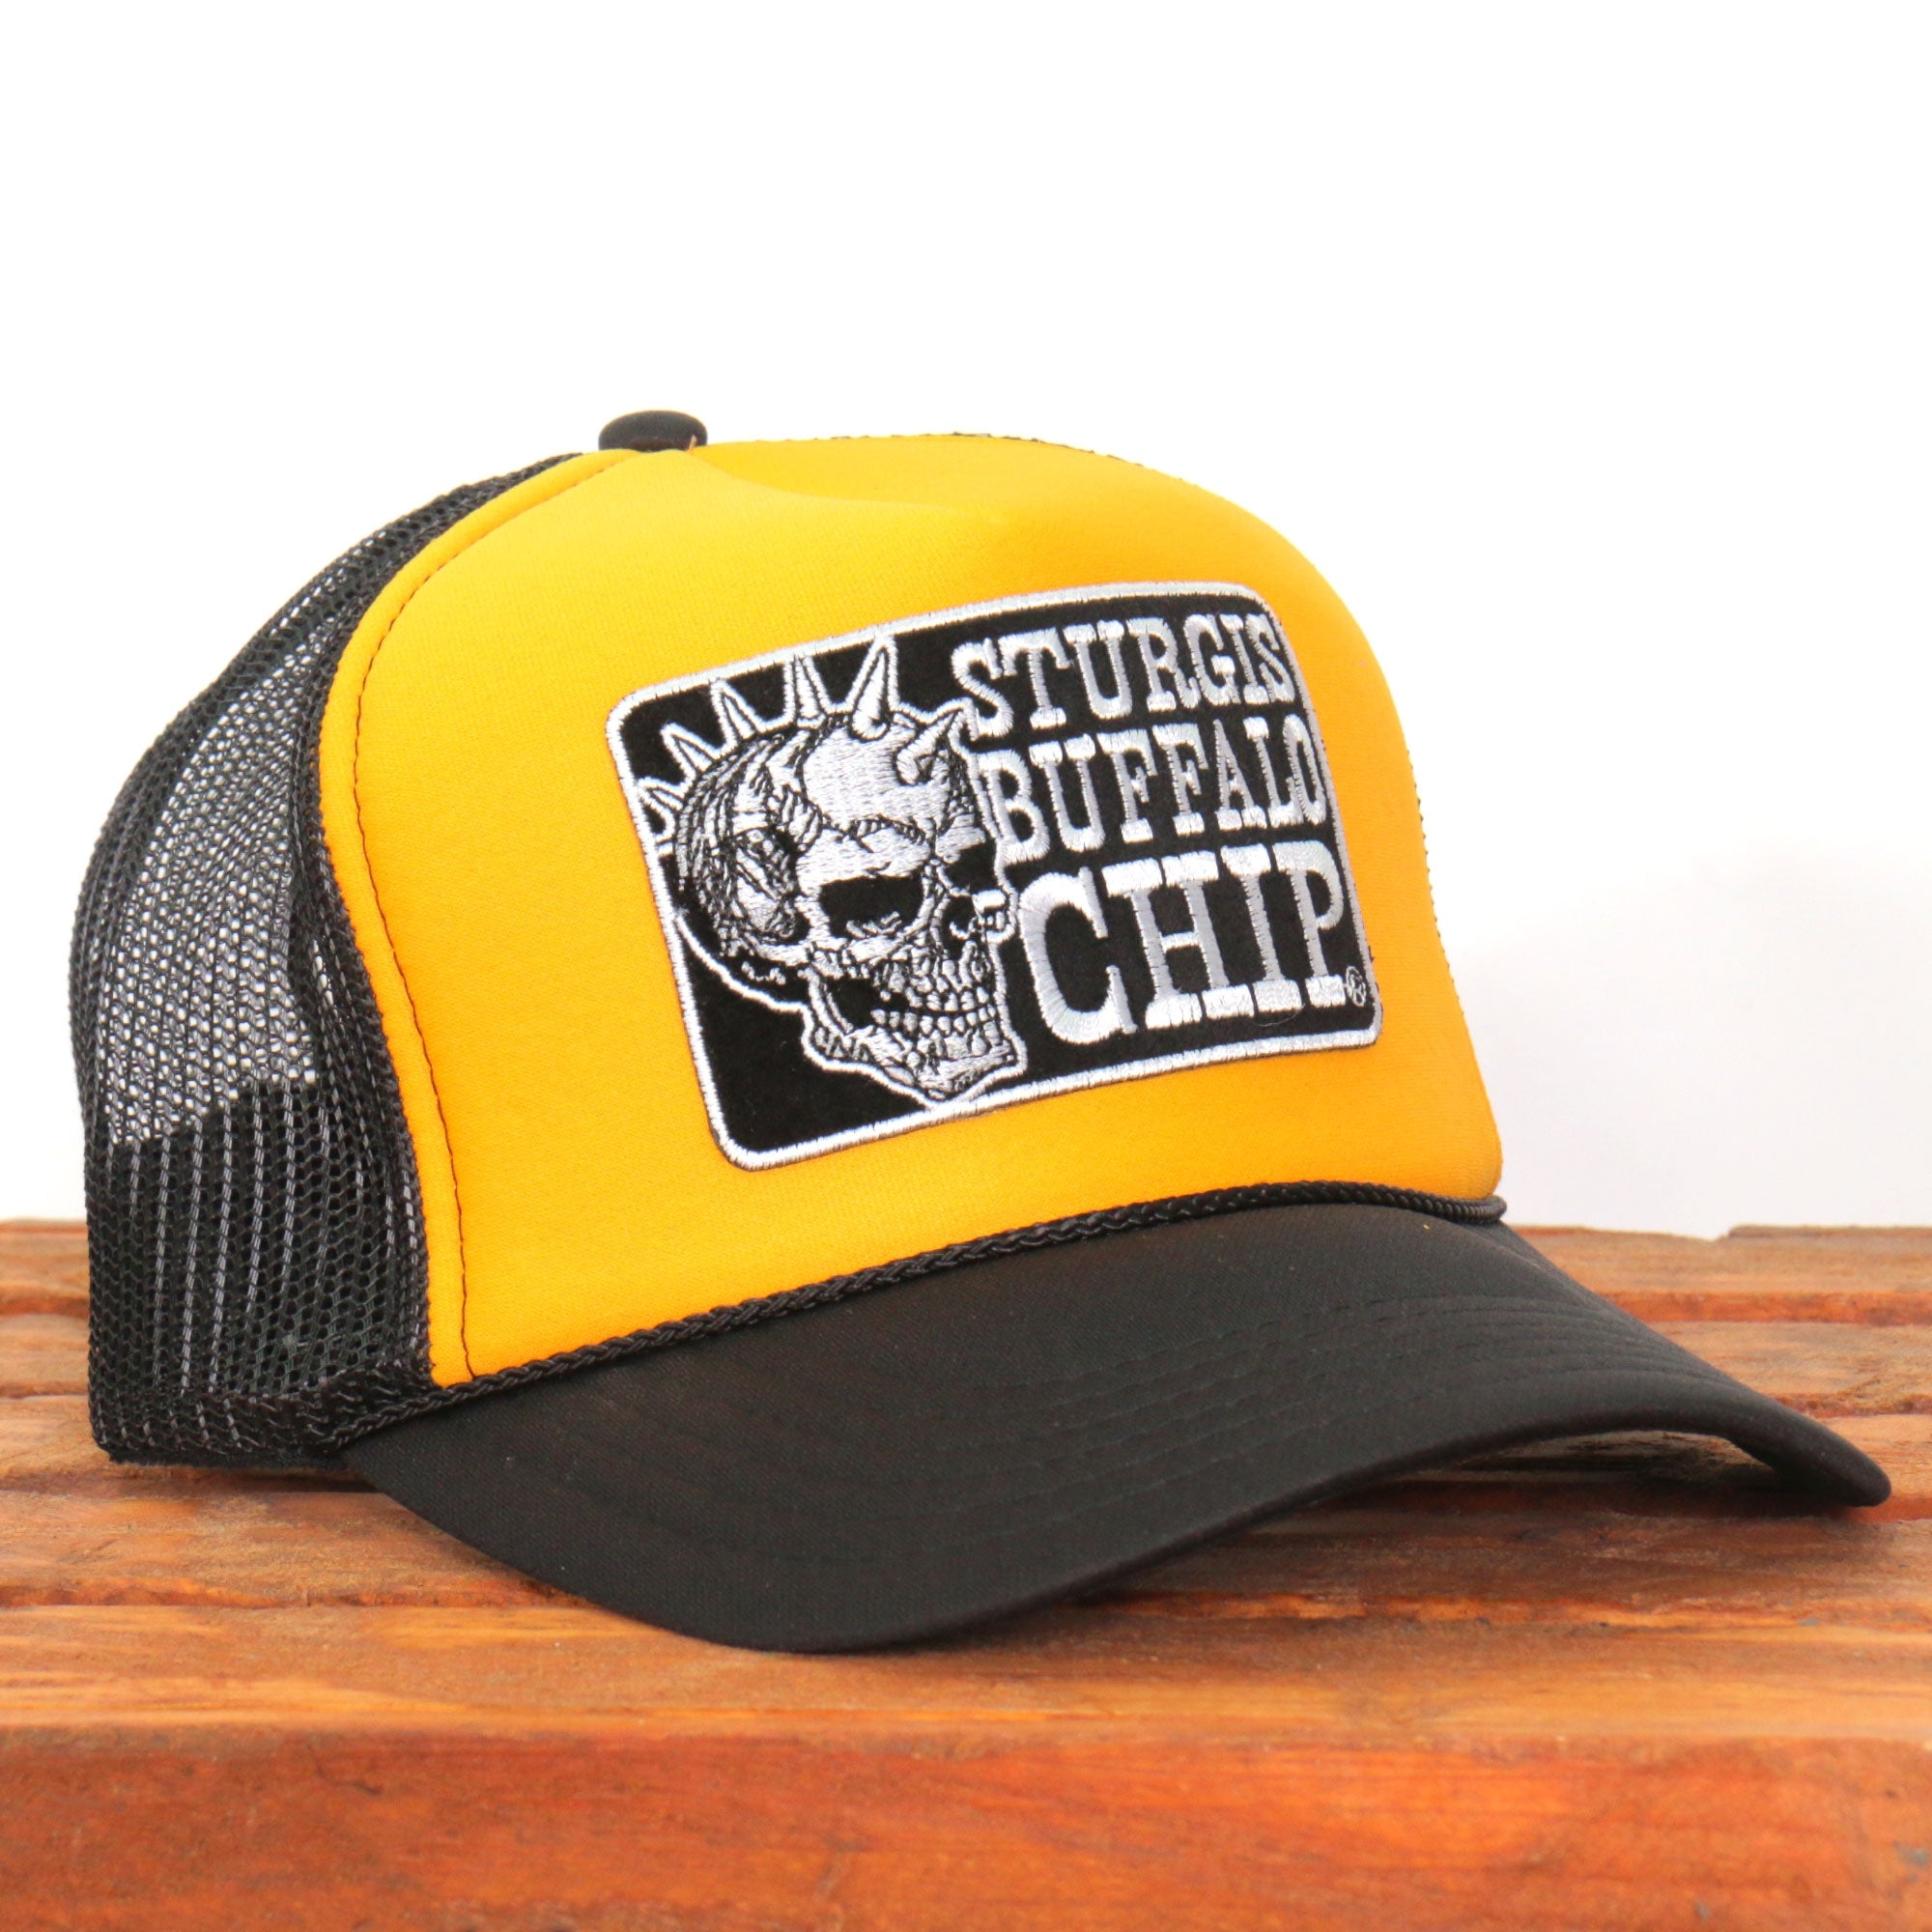 Official Sturgis Buffalo Chip Spiked Skull Trucker Hat (Yellow and Black)